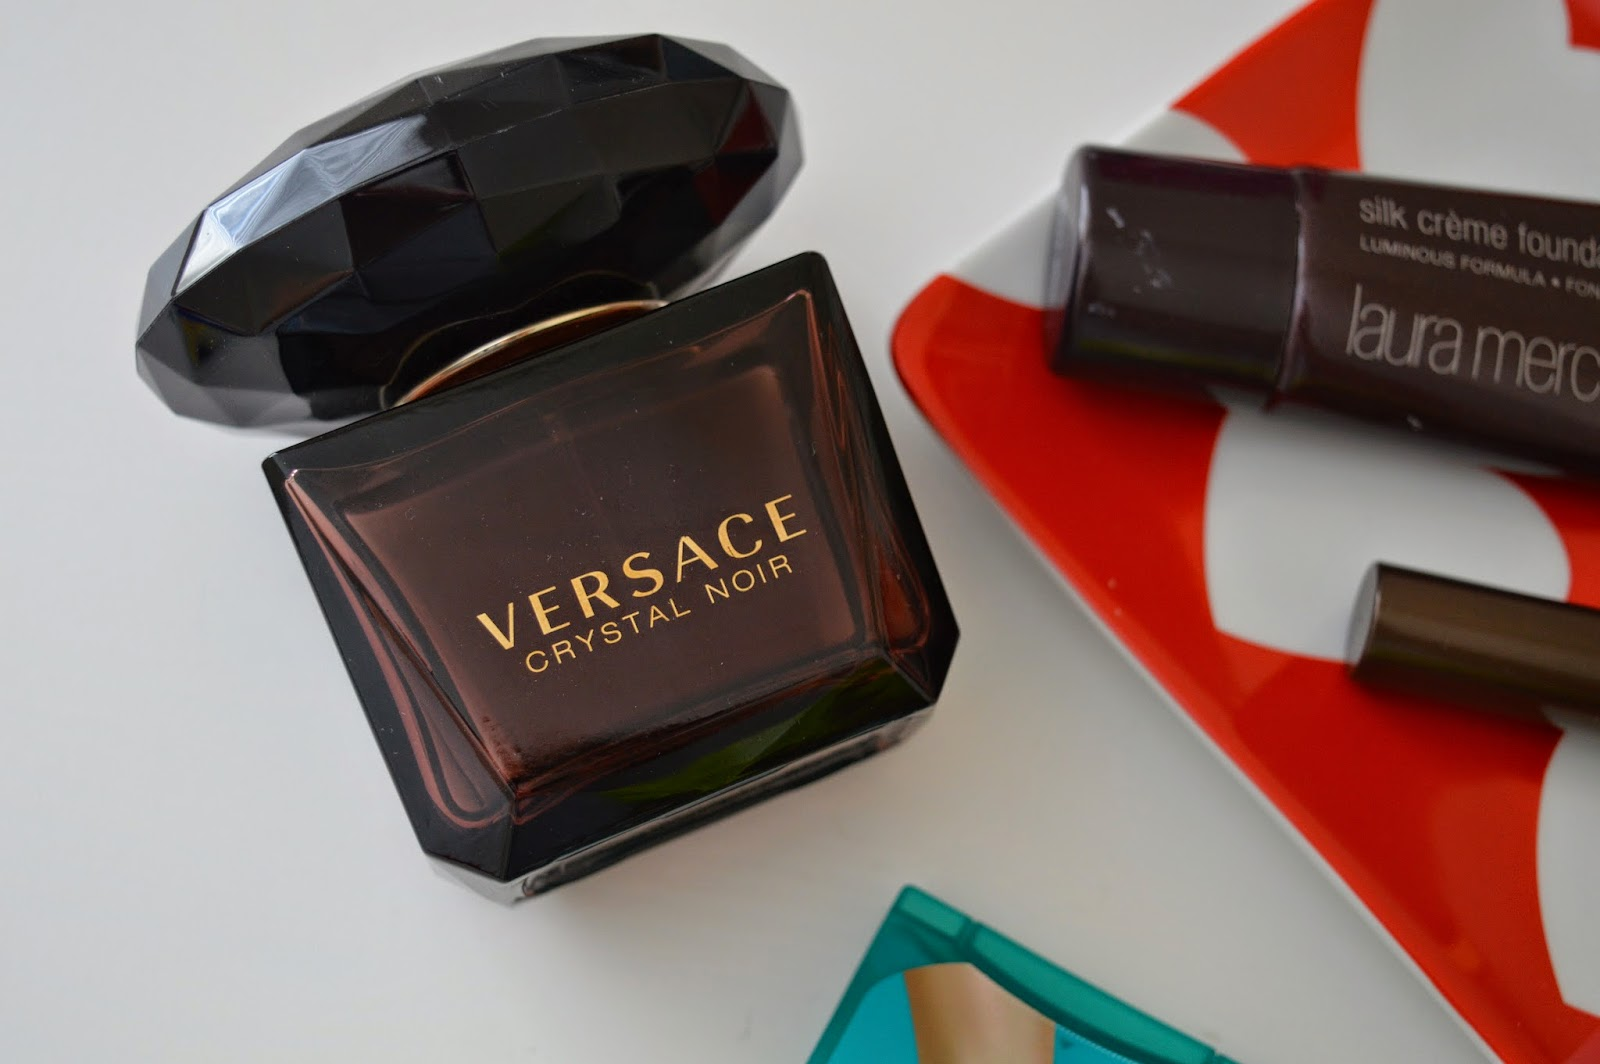 versace_crystal_noir_perfume_review_blogger